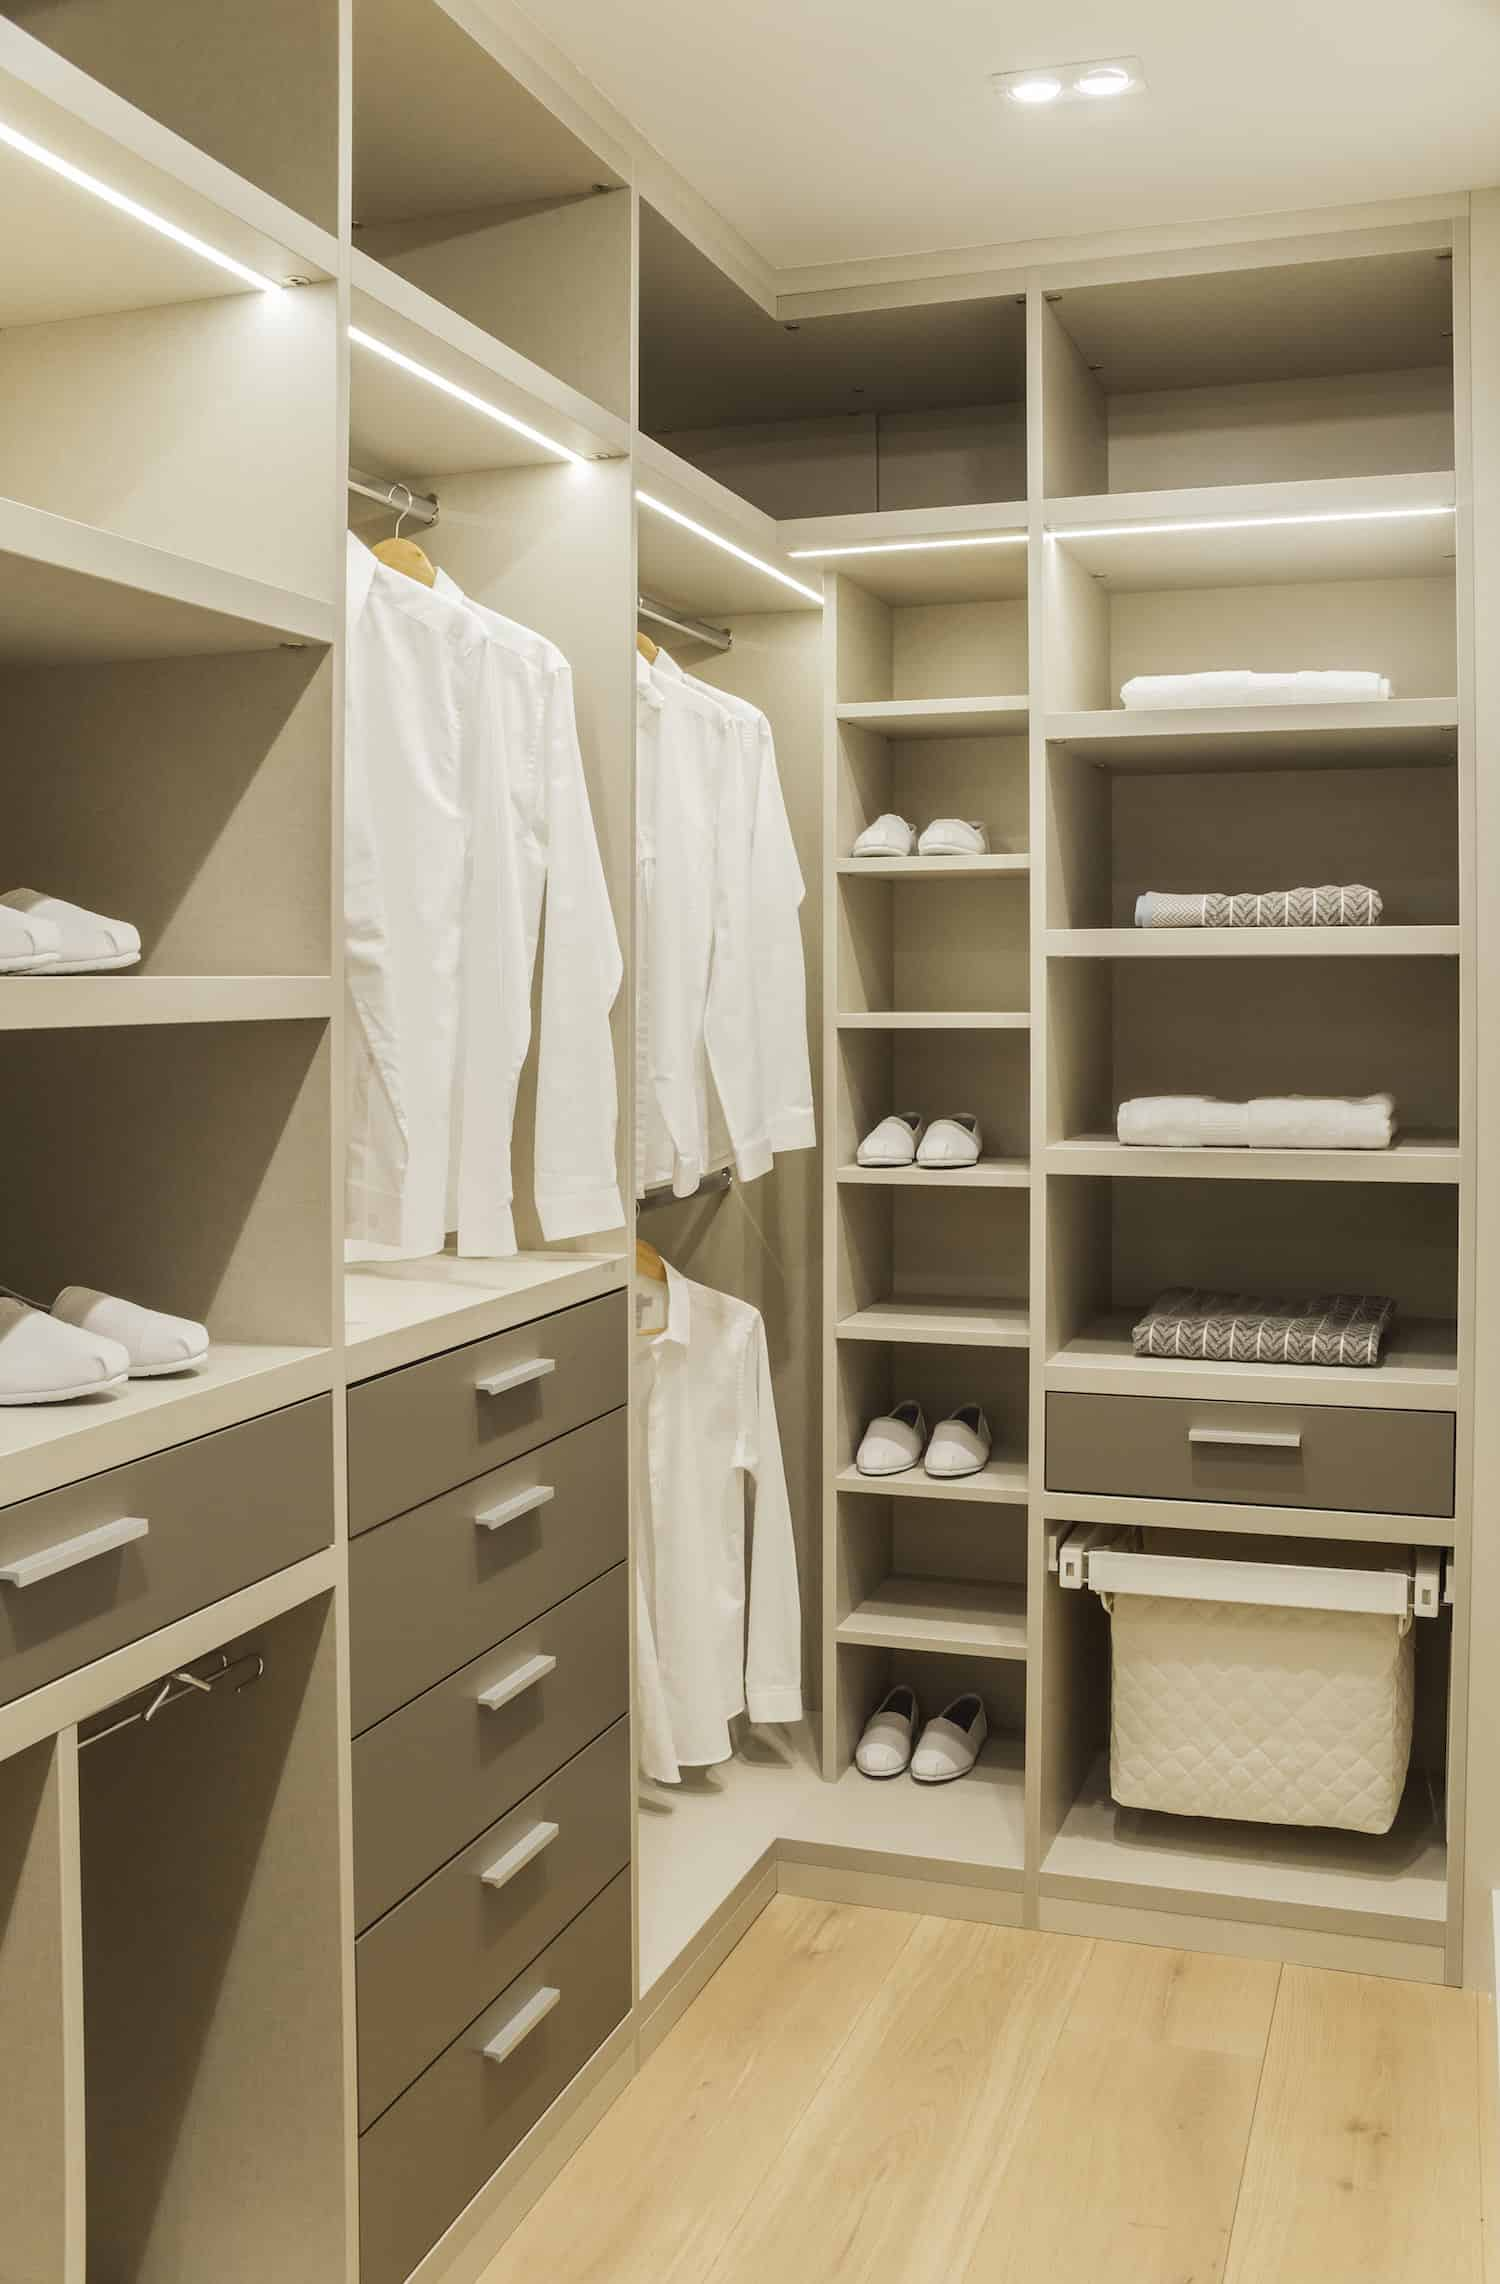 This bedroom closet features bright finishes for a lighter look. The cabinet lighting looks good as well.